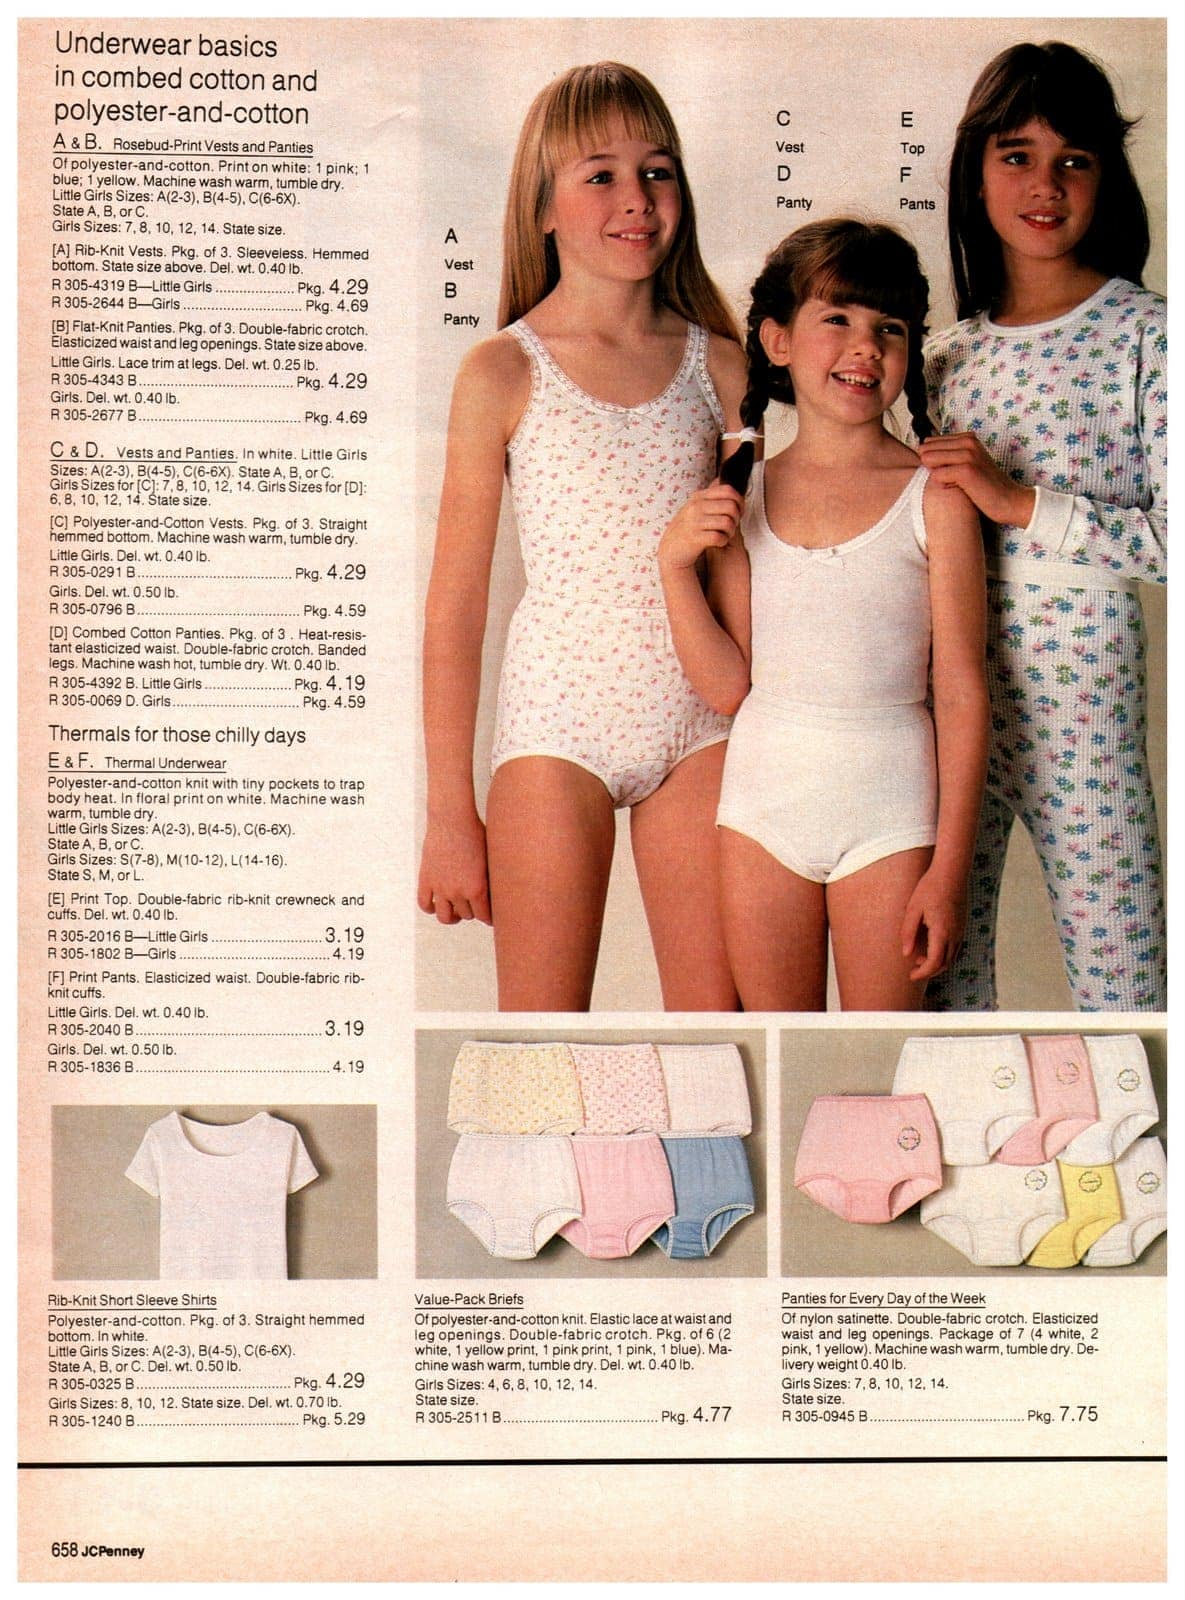 Underwear basics for girls - print vests, vests and panties and thermal underwear